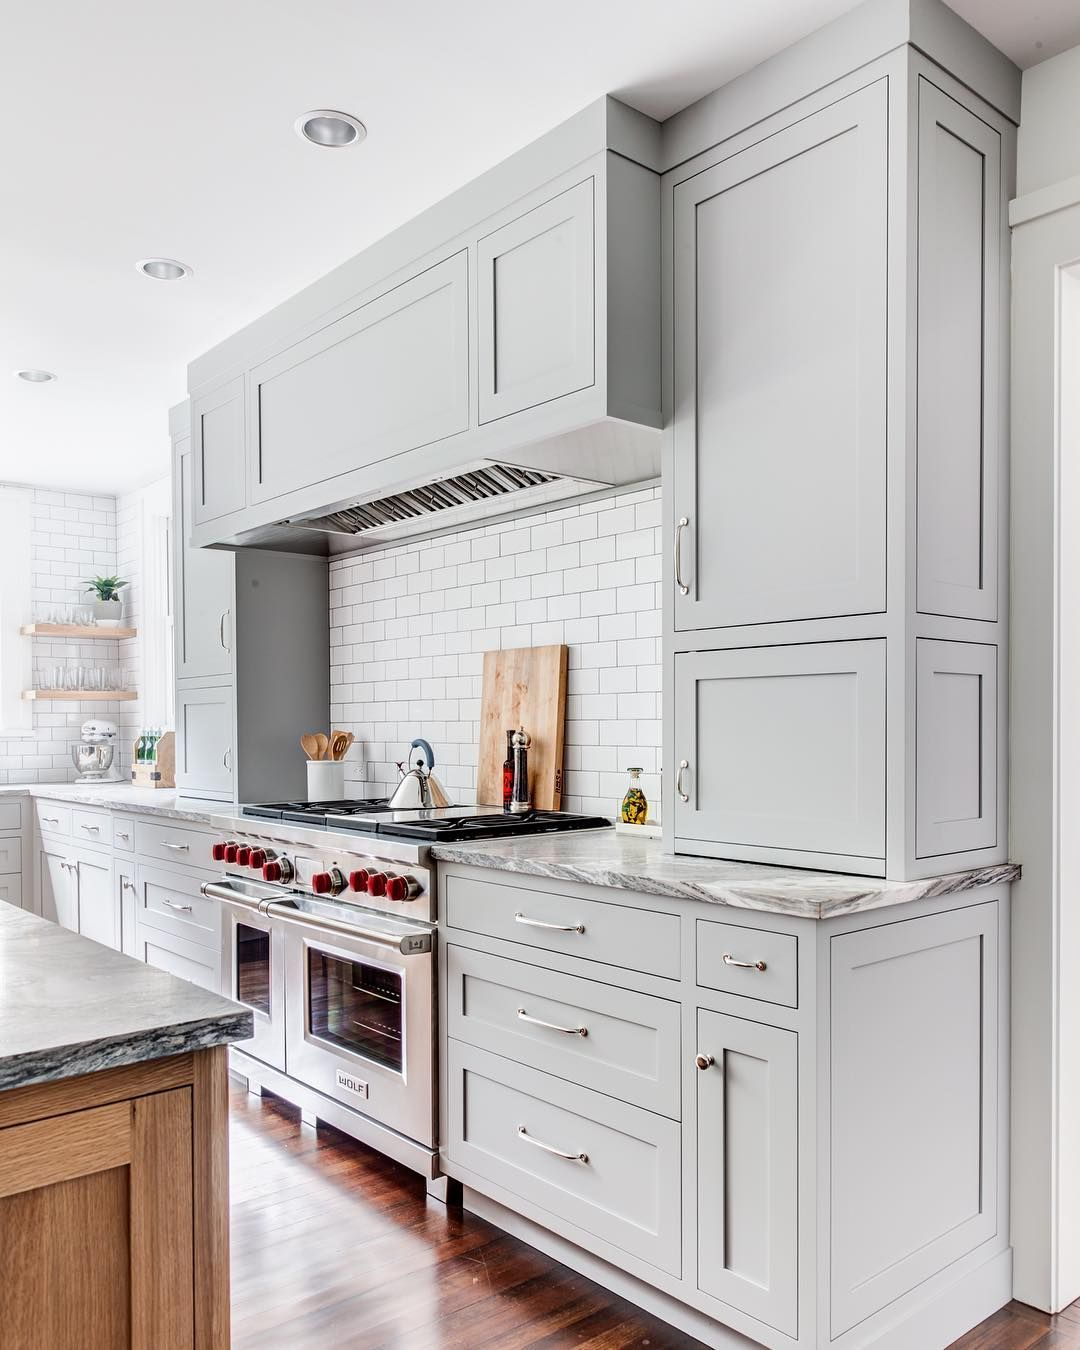 Gray Painted Kitchen Cupboards: Cabinet Color Is Benjamin Moore Coventry Gray